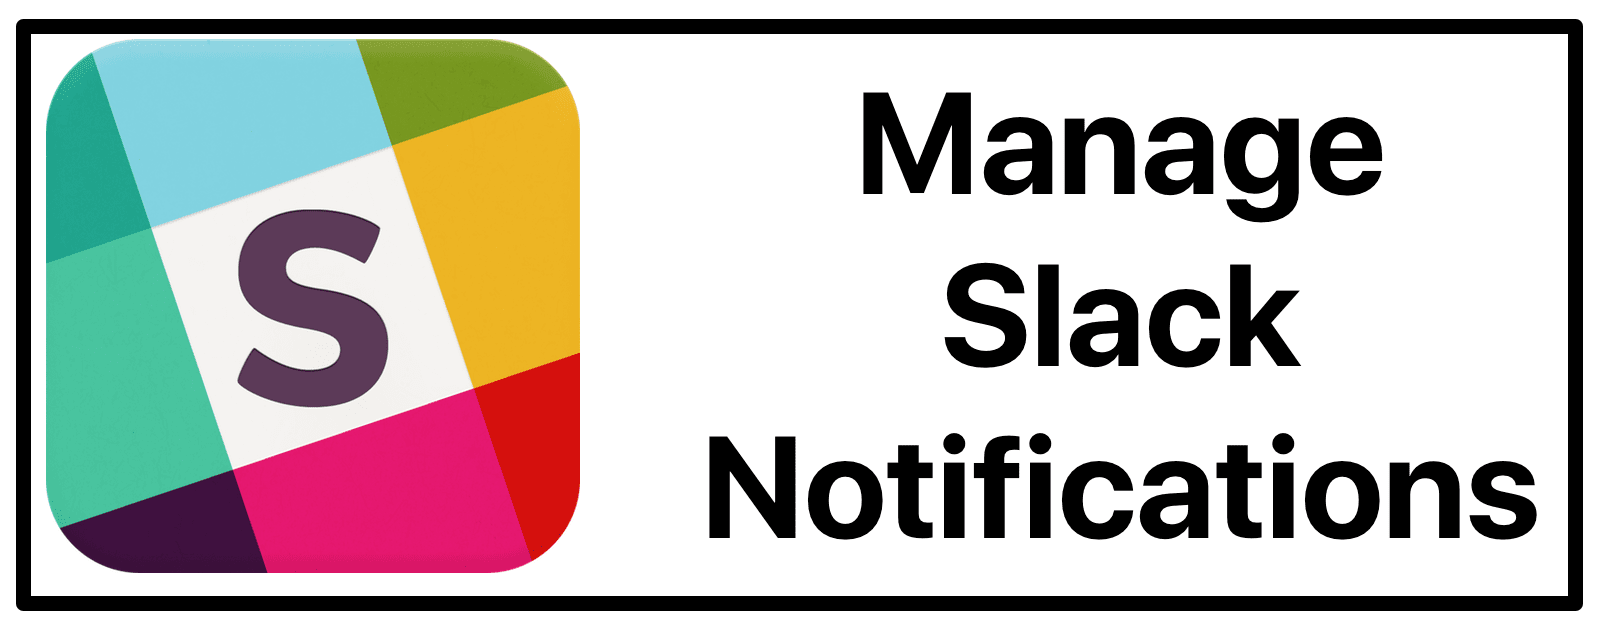 How to Manage Slack Notifications on macOS and iOS - The Mac